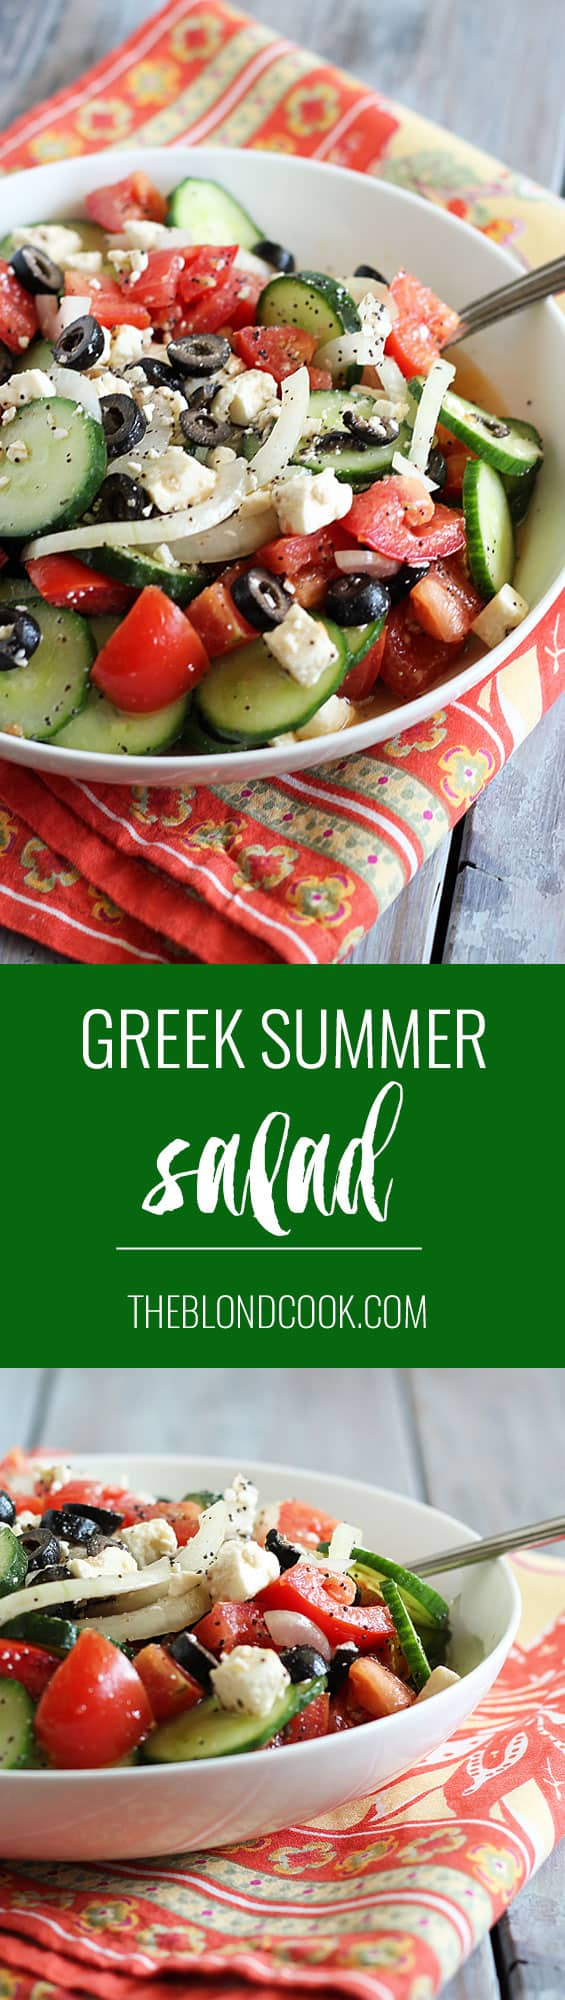 Greek Summer Salad - A Greek-inspired, healthy & hearty summer salad | theblondcook.com